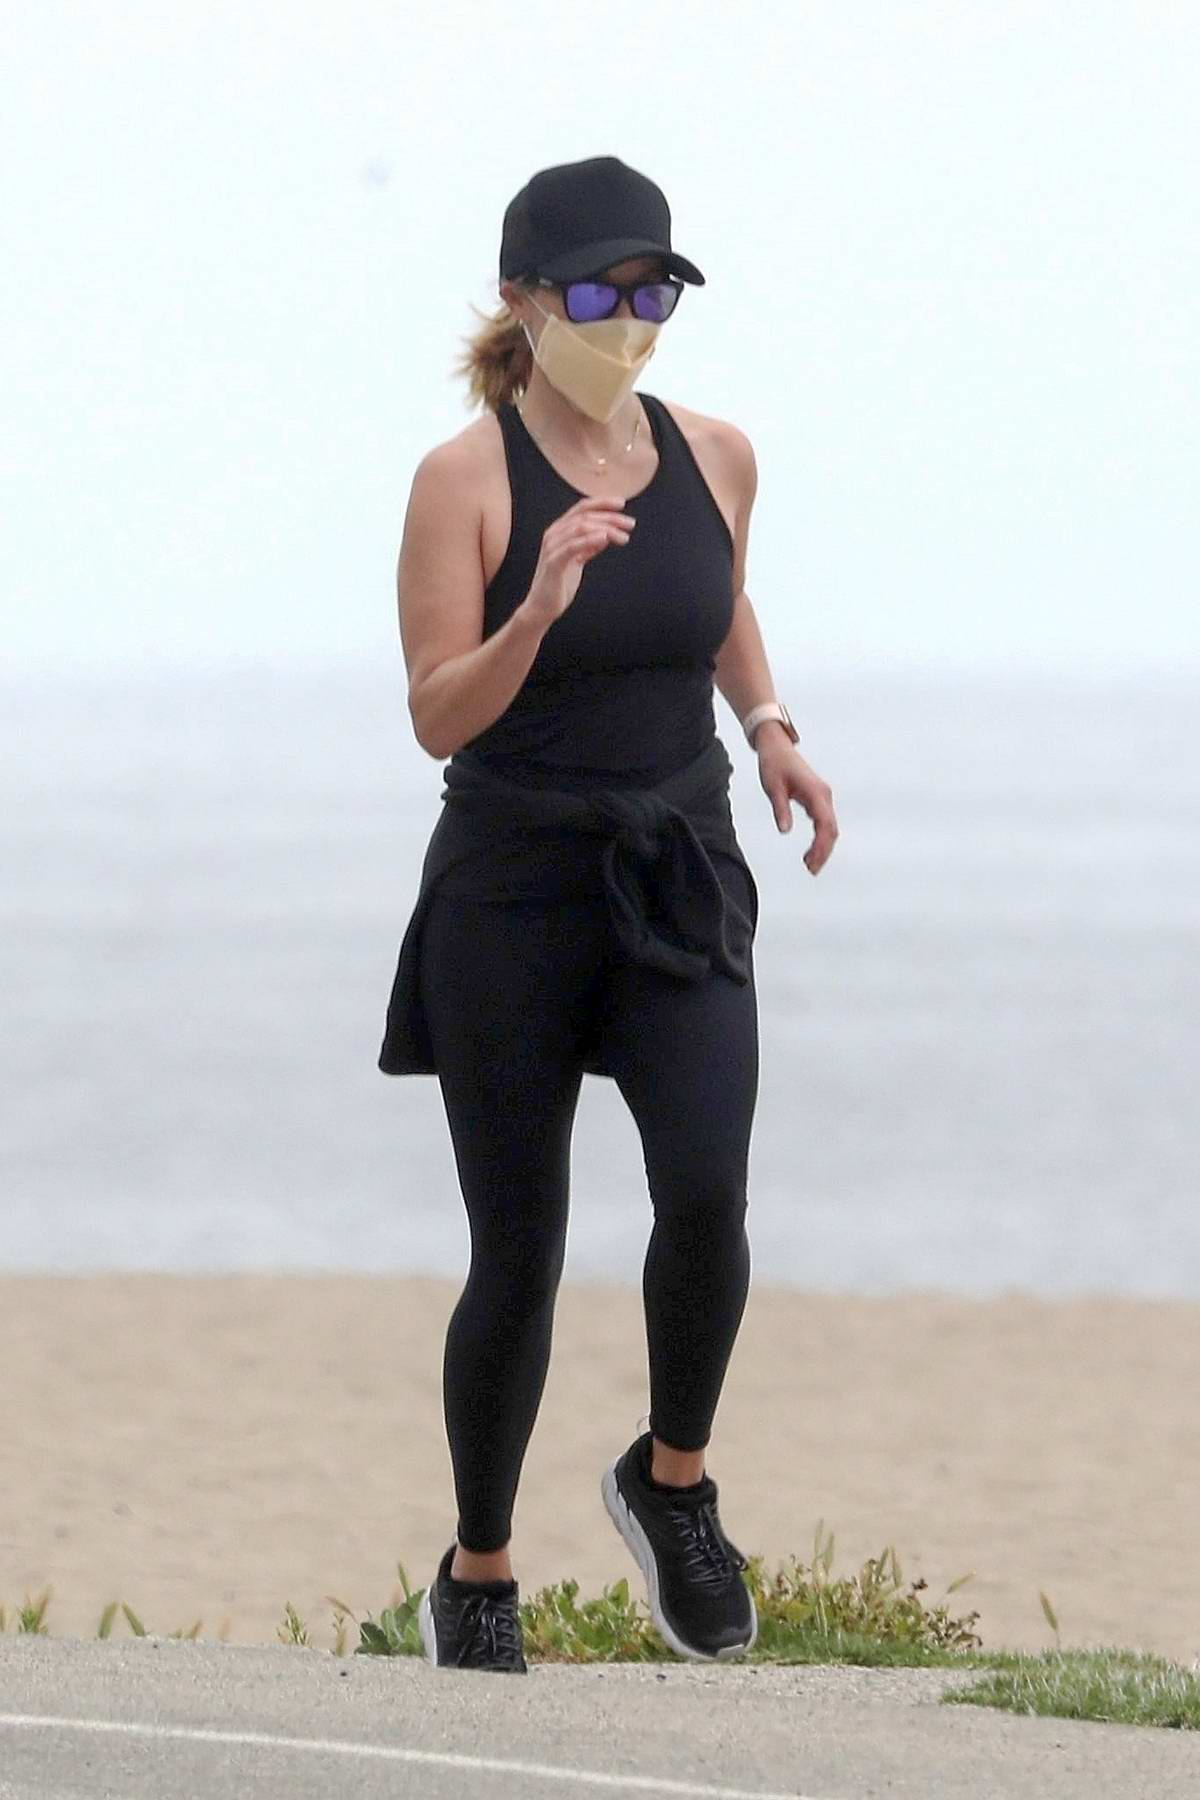 Reese Witherspoon sports all-black and a face mask while out for a jog with a friend in Malibu, California